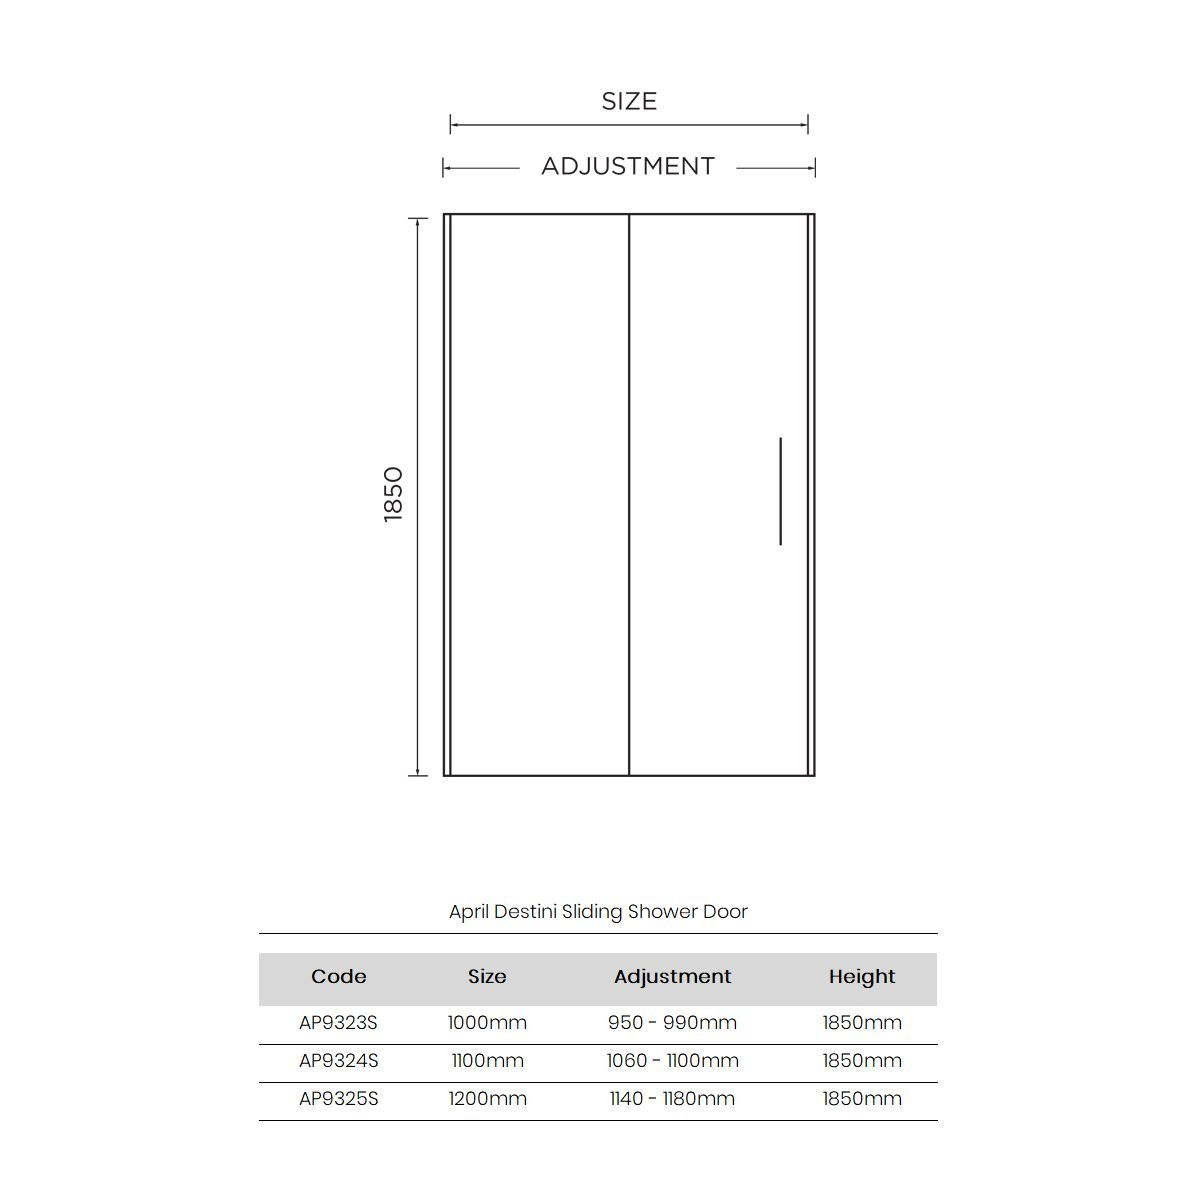 April Destini Sliding Shower Door with Optional Side Panel Dimensions